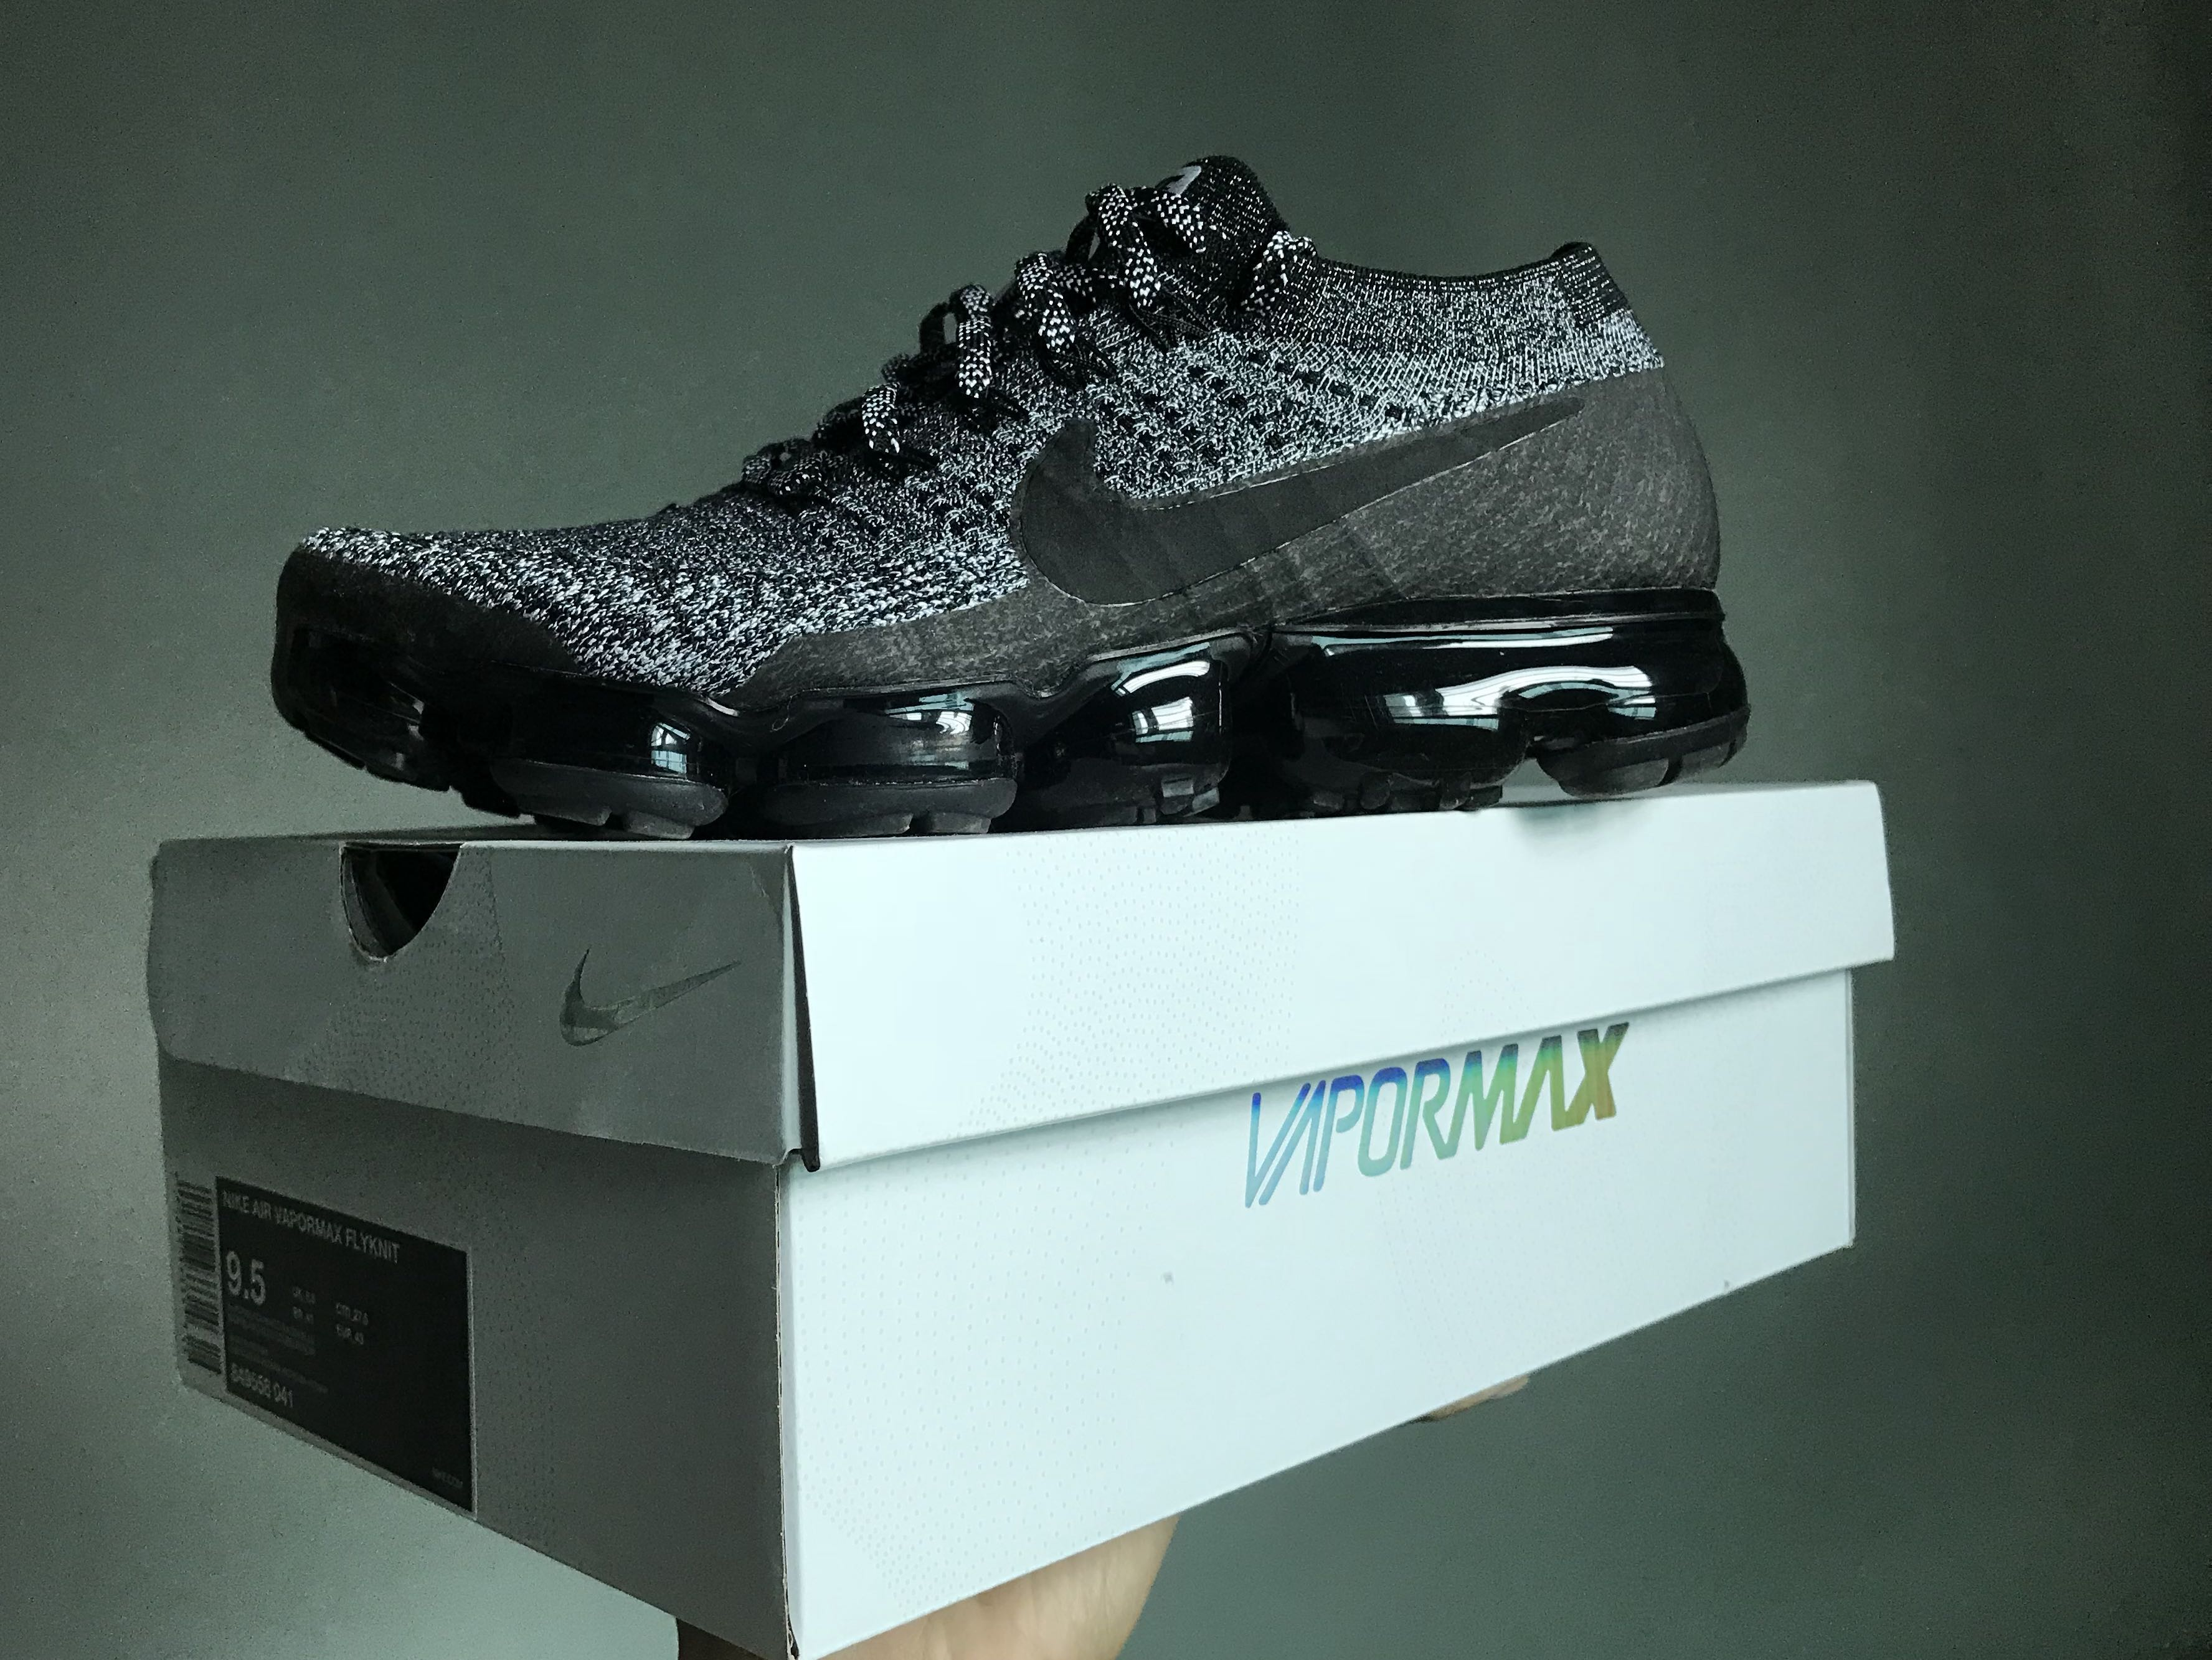 09144280a1 Nike Air Vapormax Oreo 2.0 US9.5, Men's Fashion, Footwear, Sneakers ...